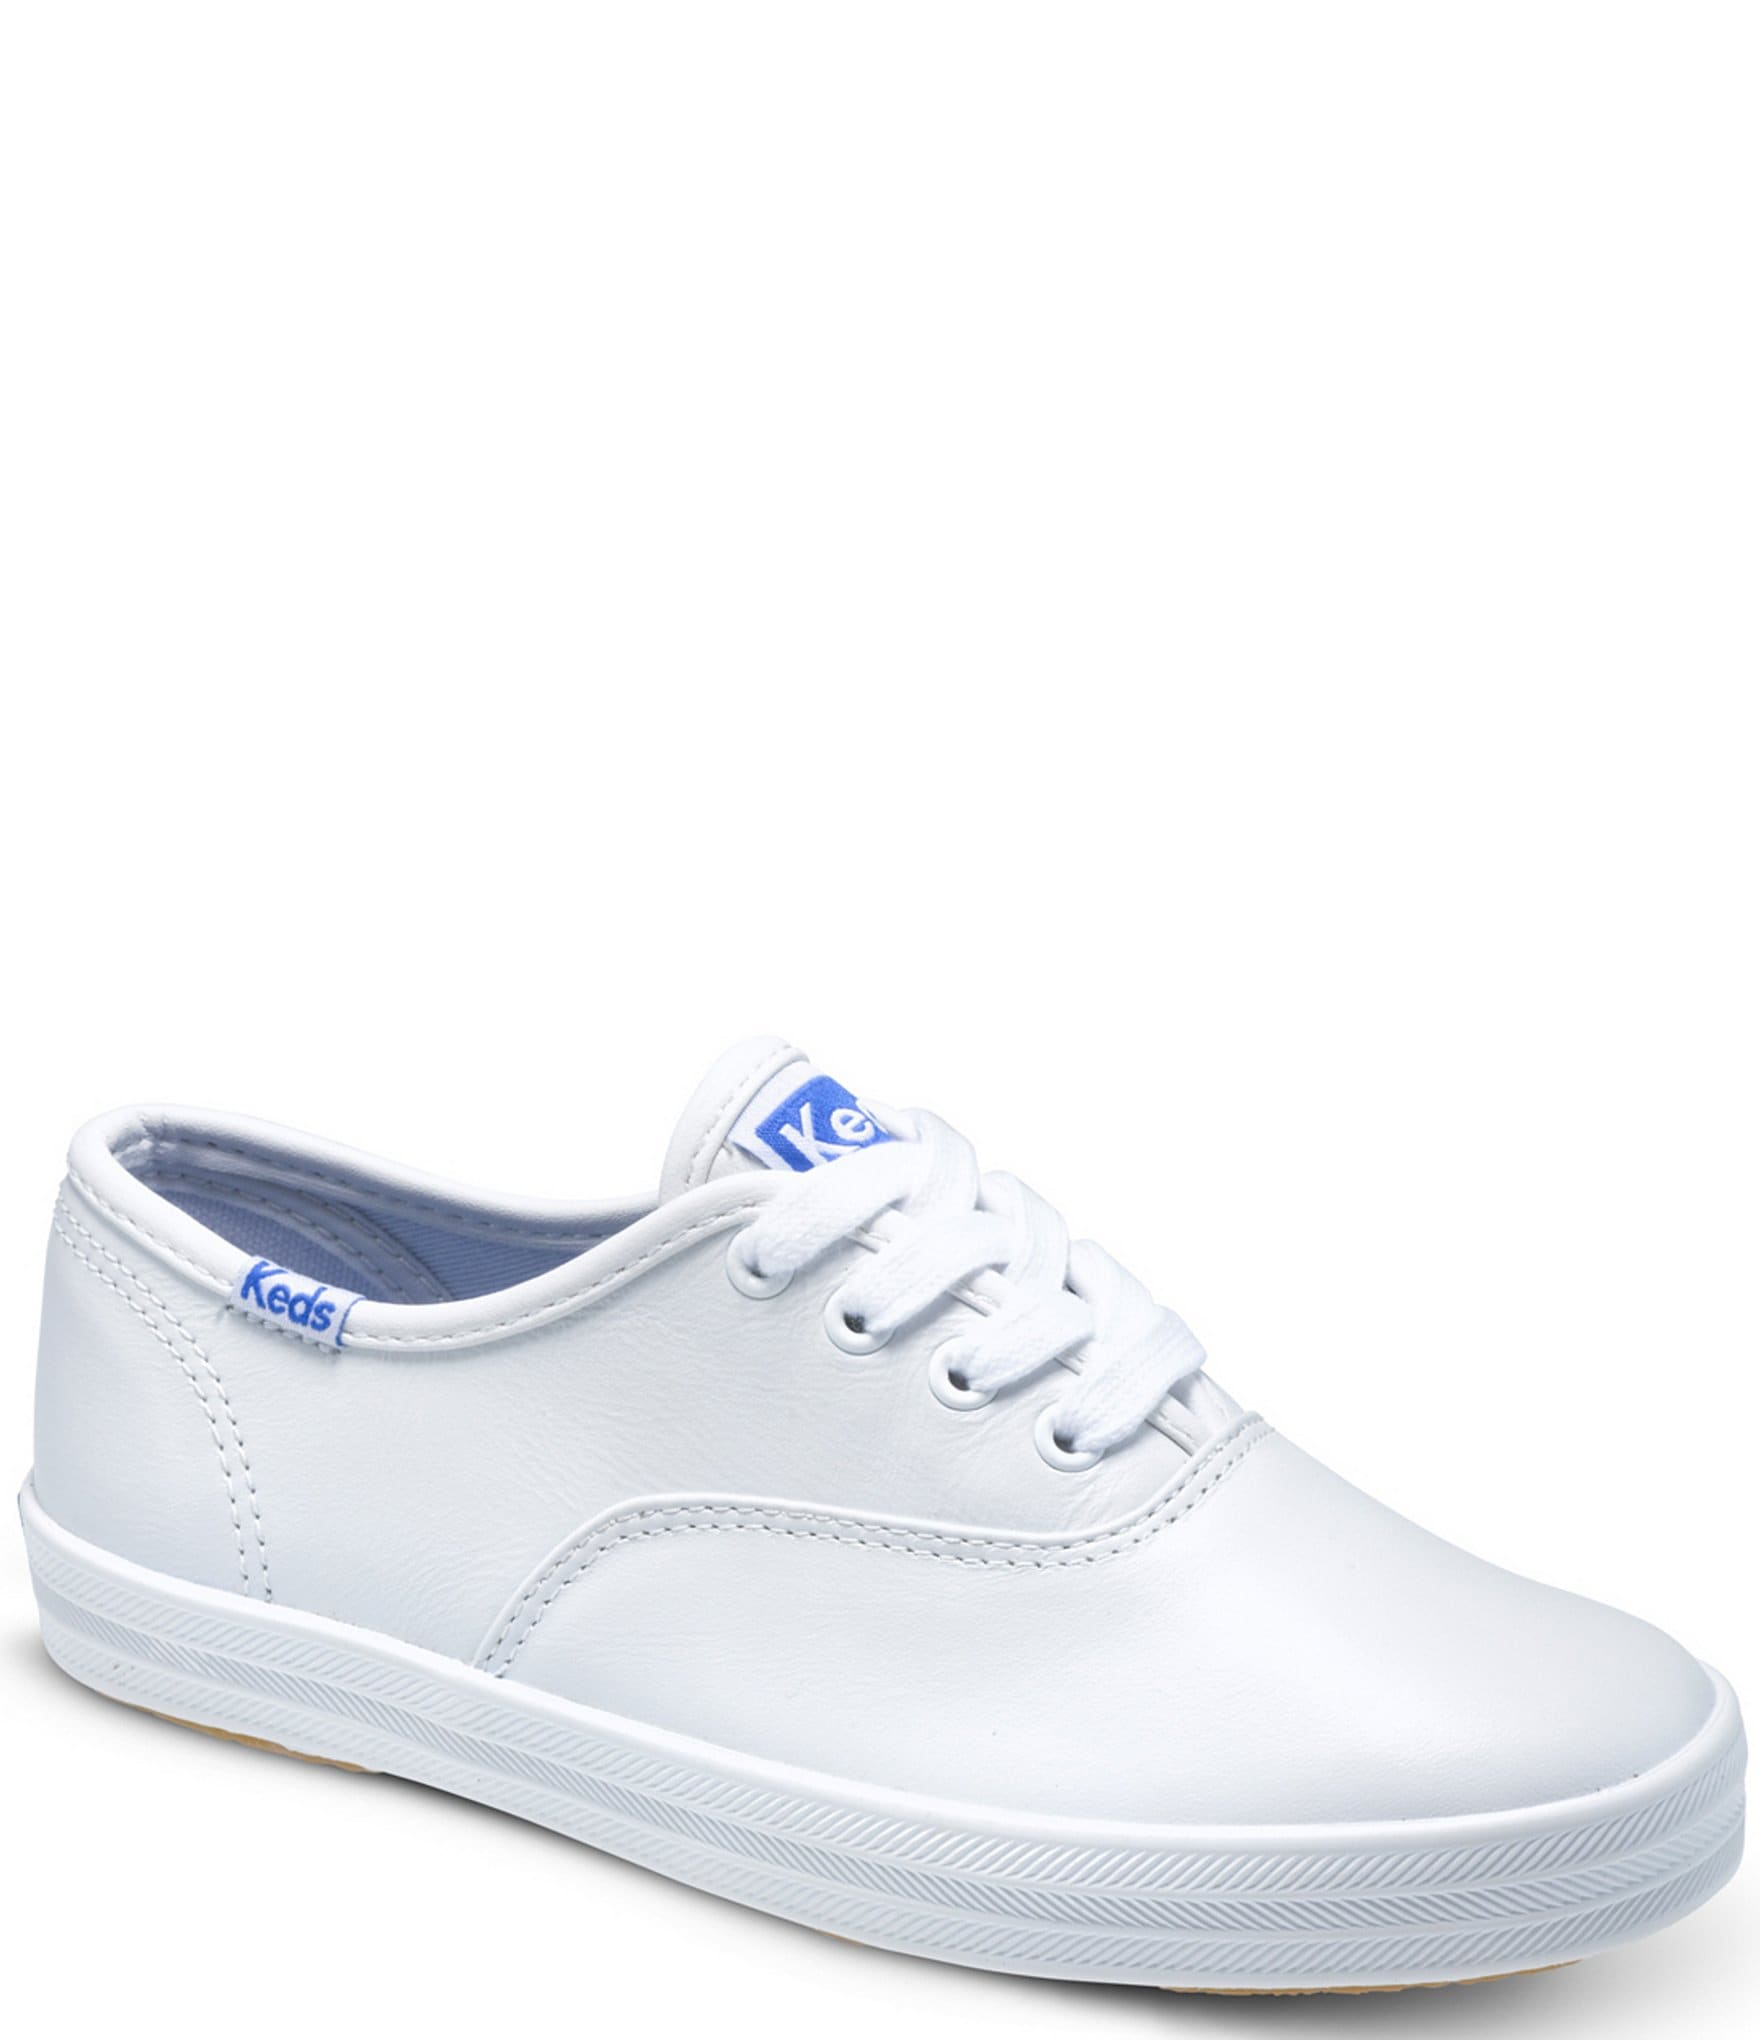 624cdff9030cc8 Keds Kids  Shoes